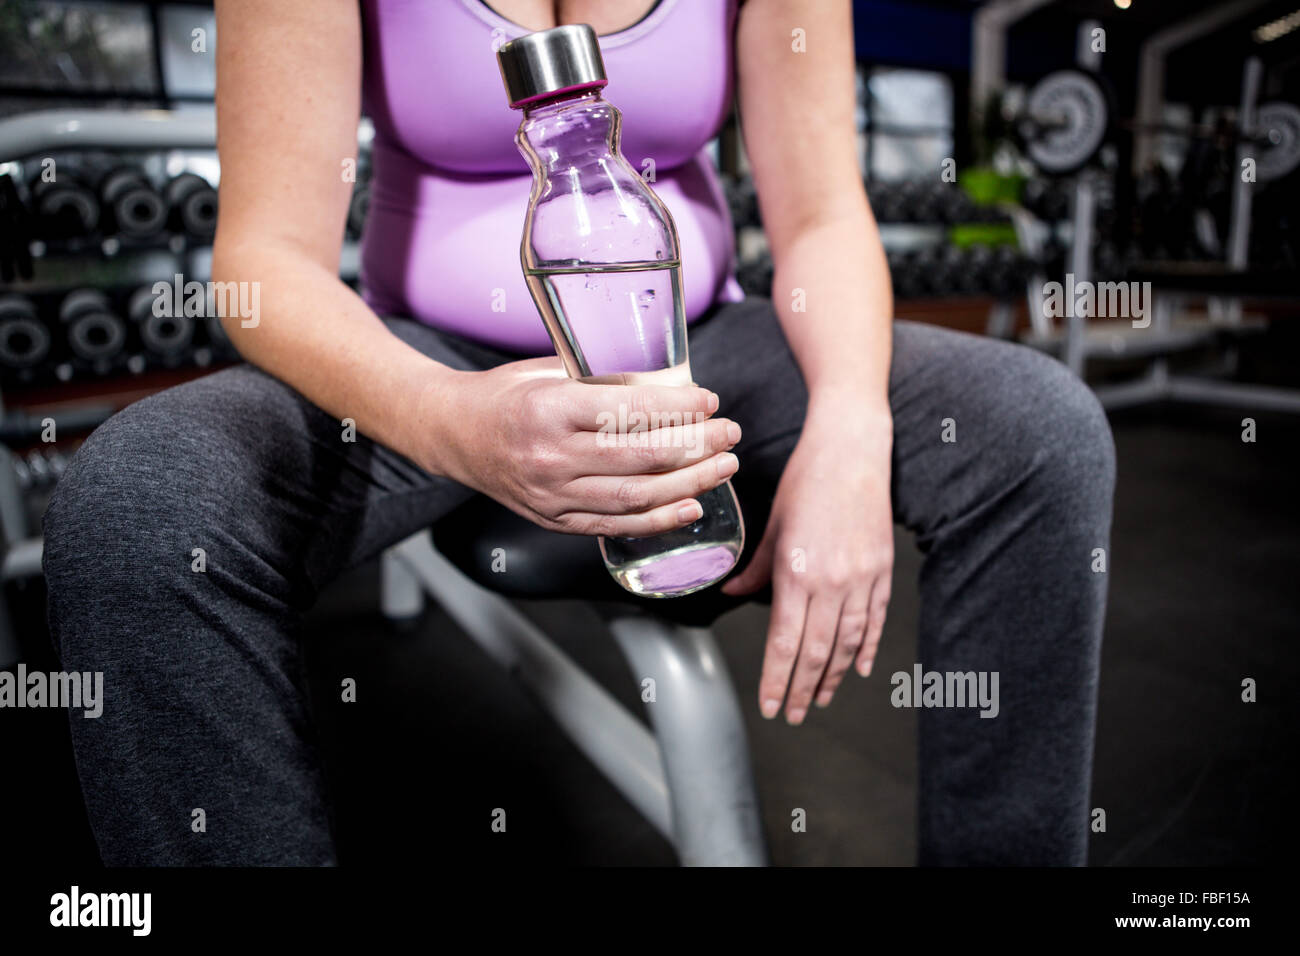 Pregnant woman holding water bottle - Stock Image